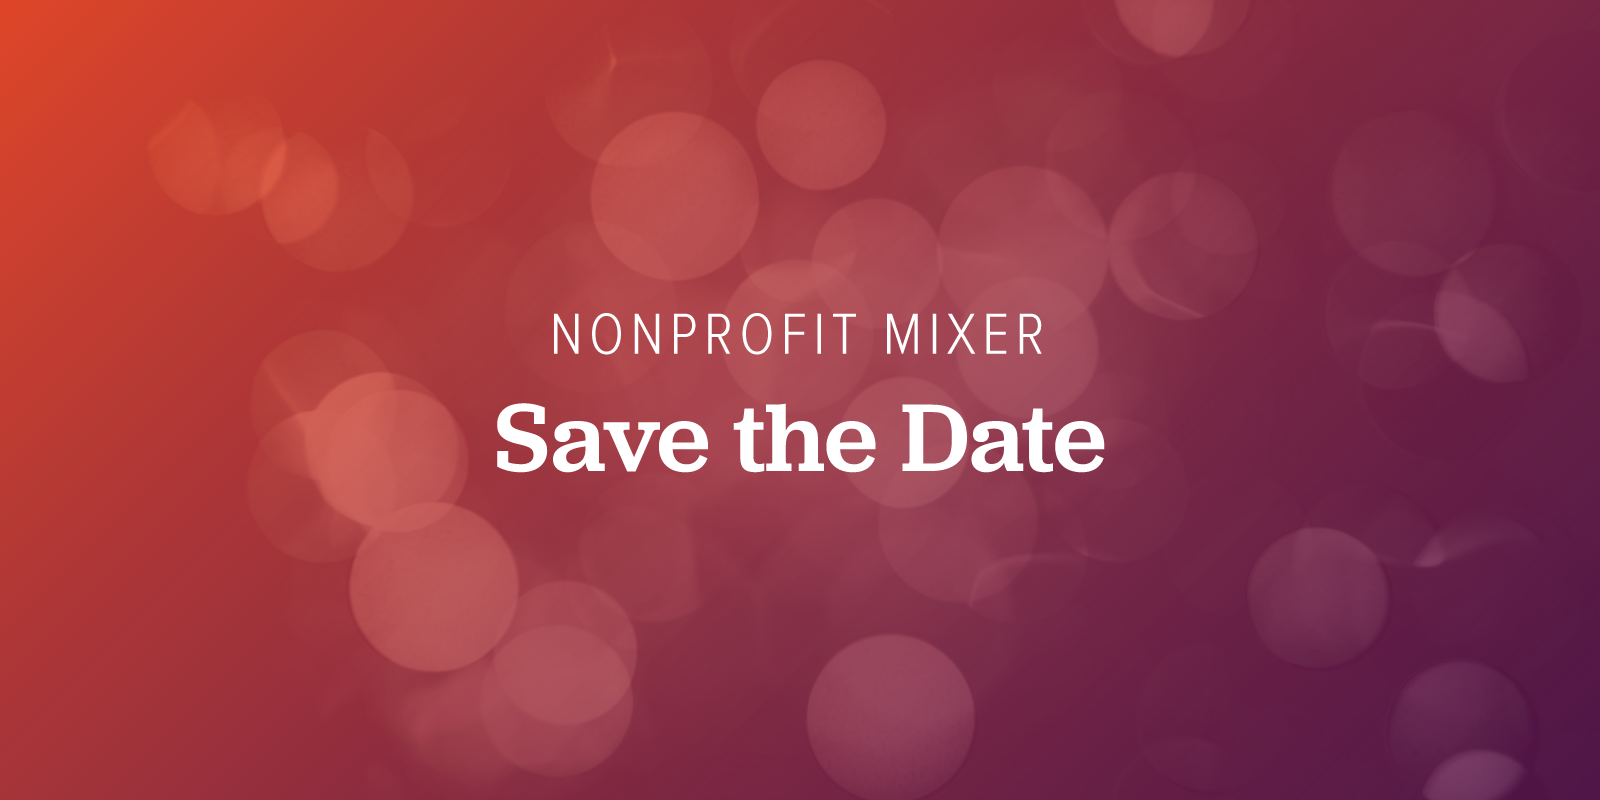 AS_save-the-date-nonprofit-mixer